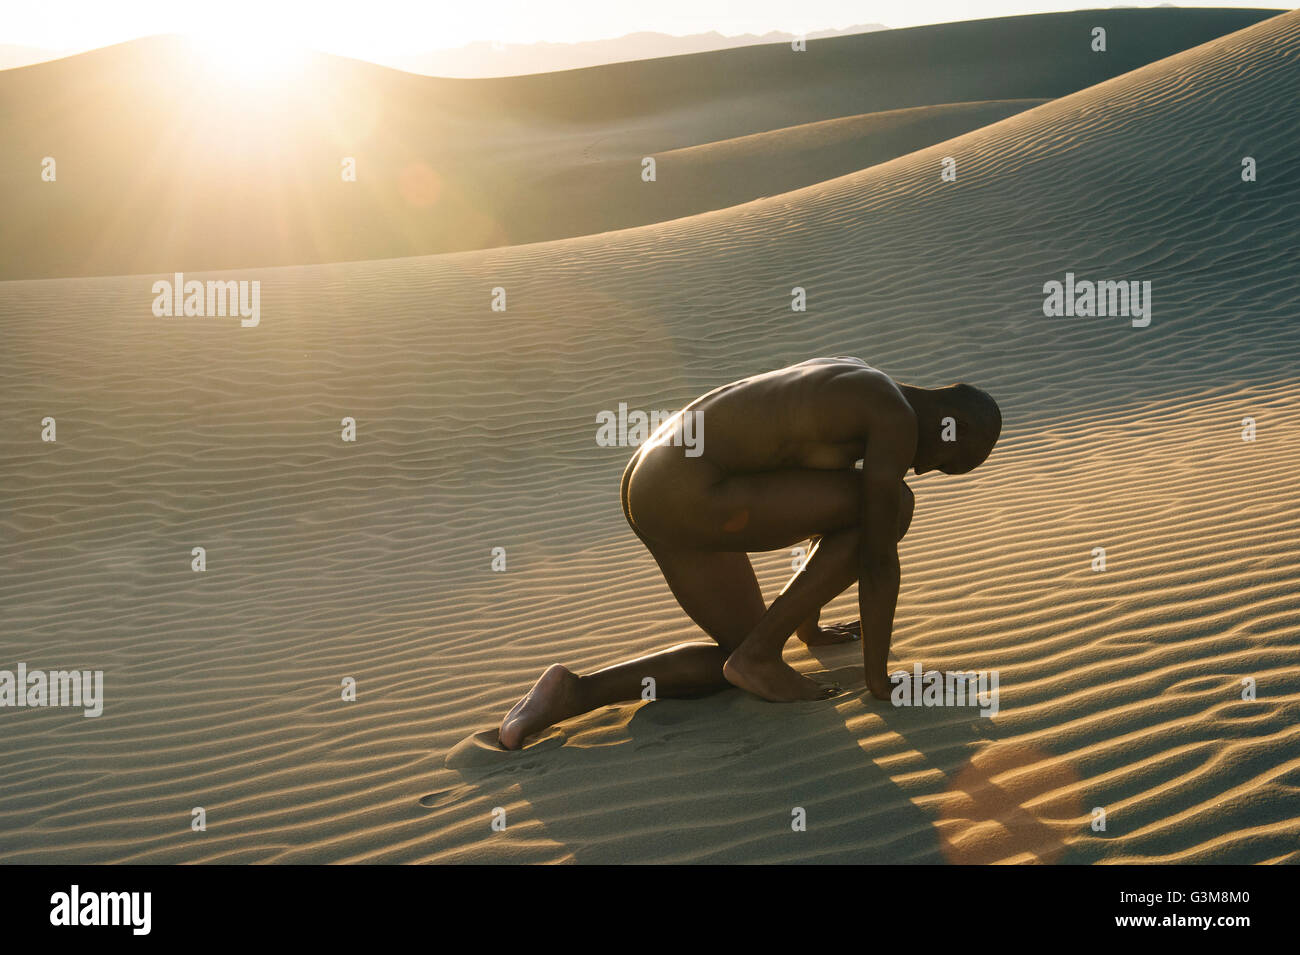 Nude woman crouched in the desert - Stock Image